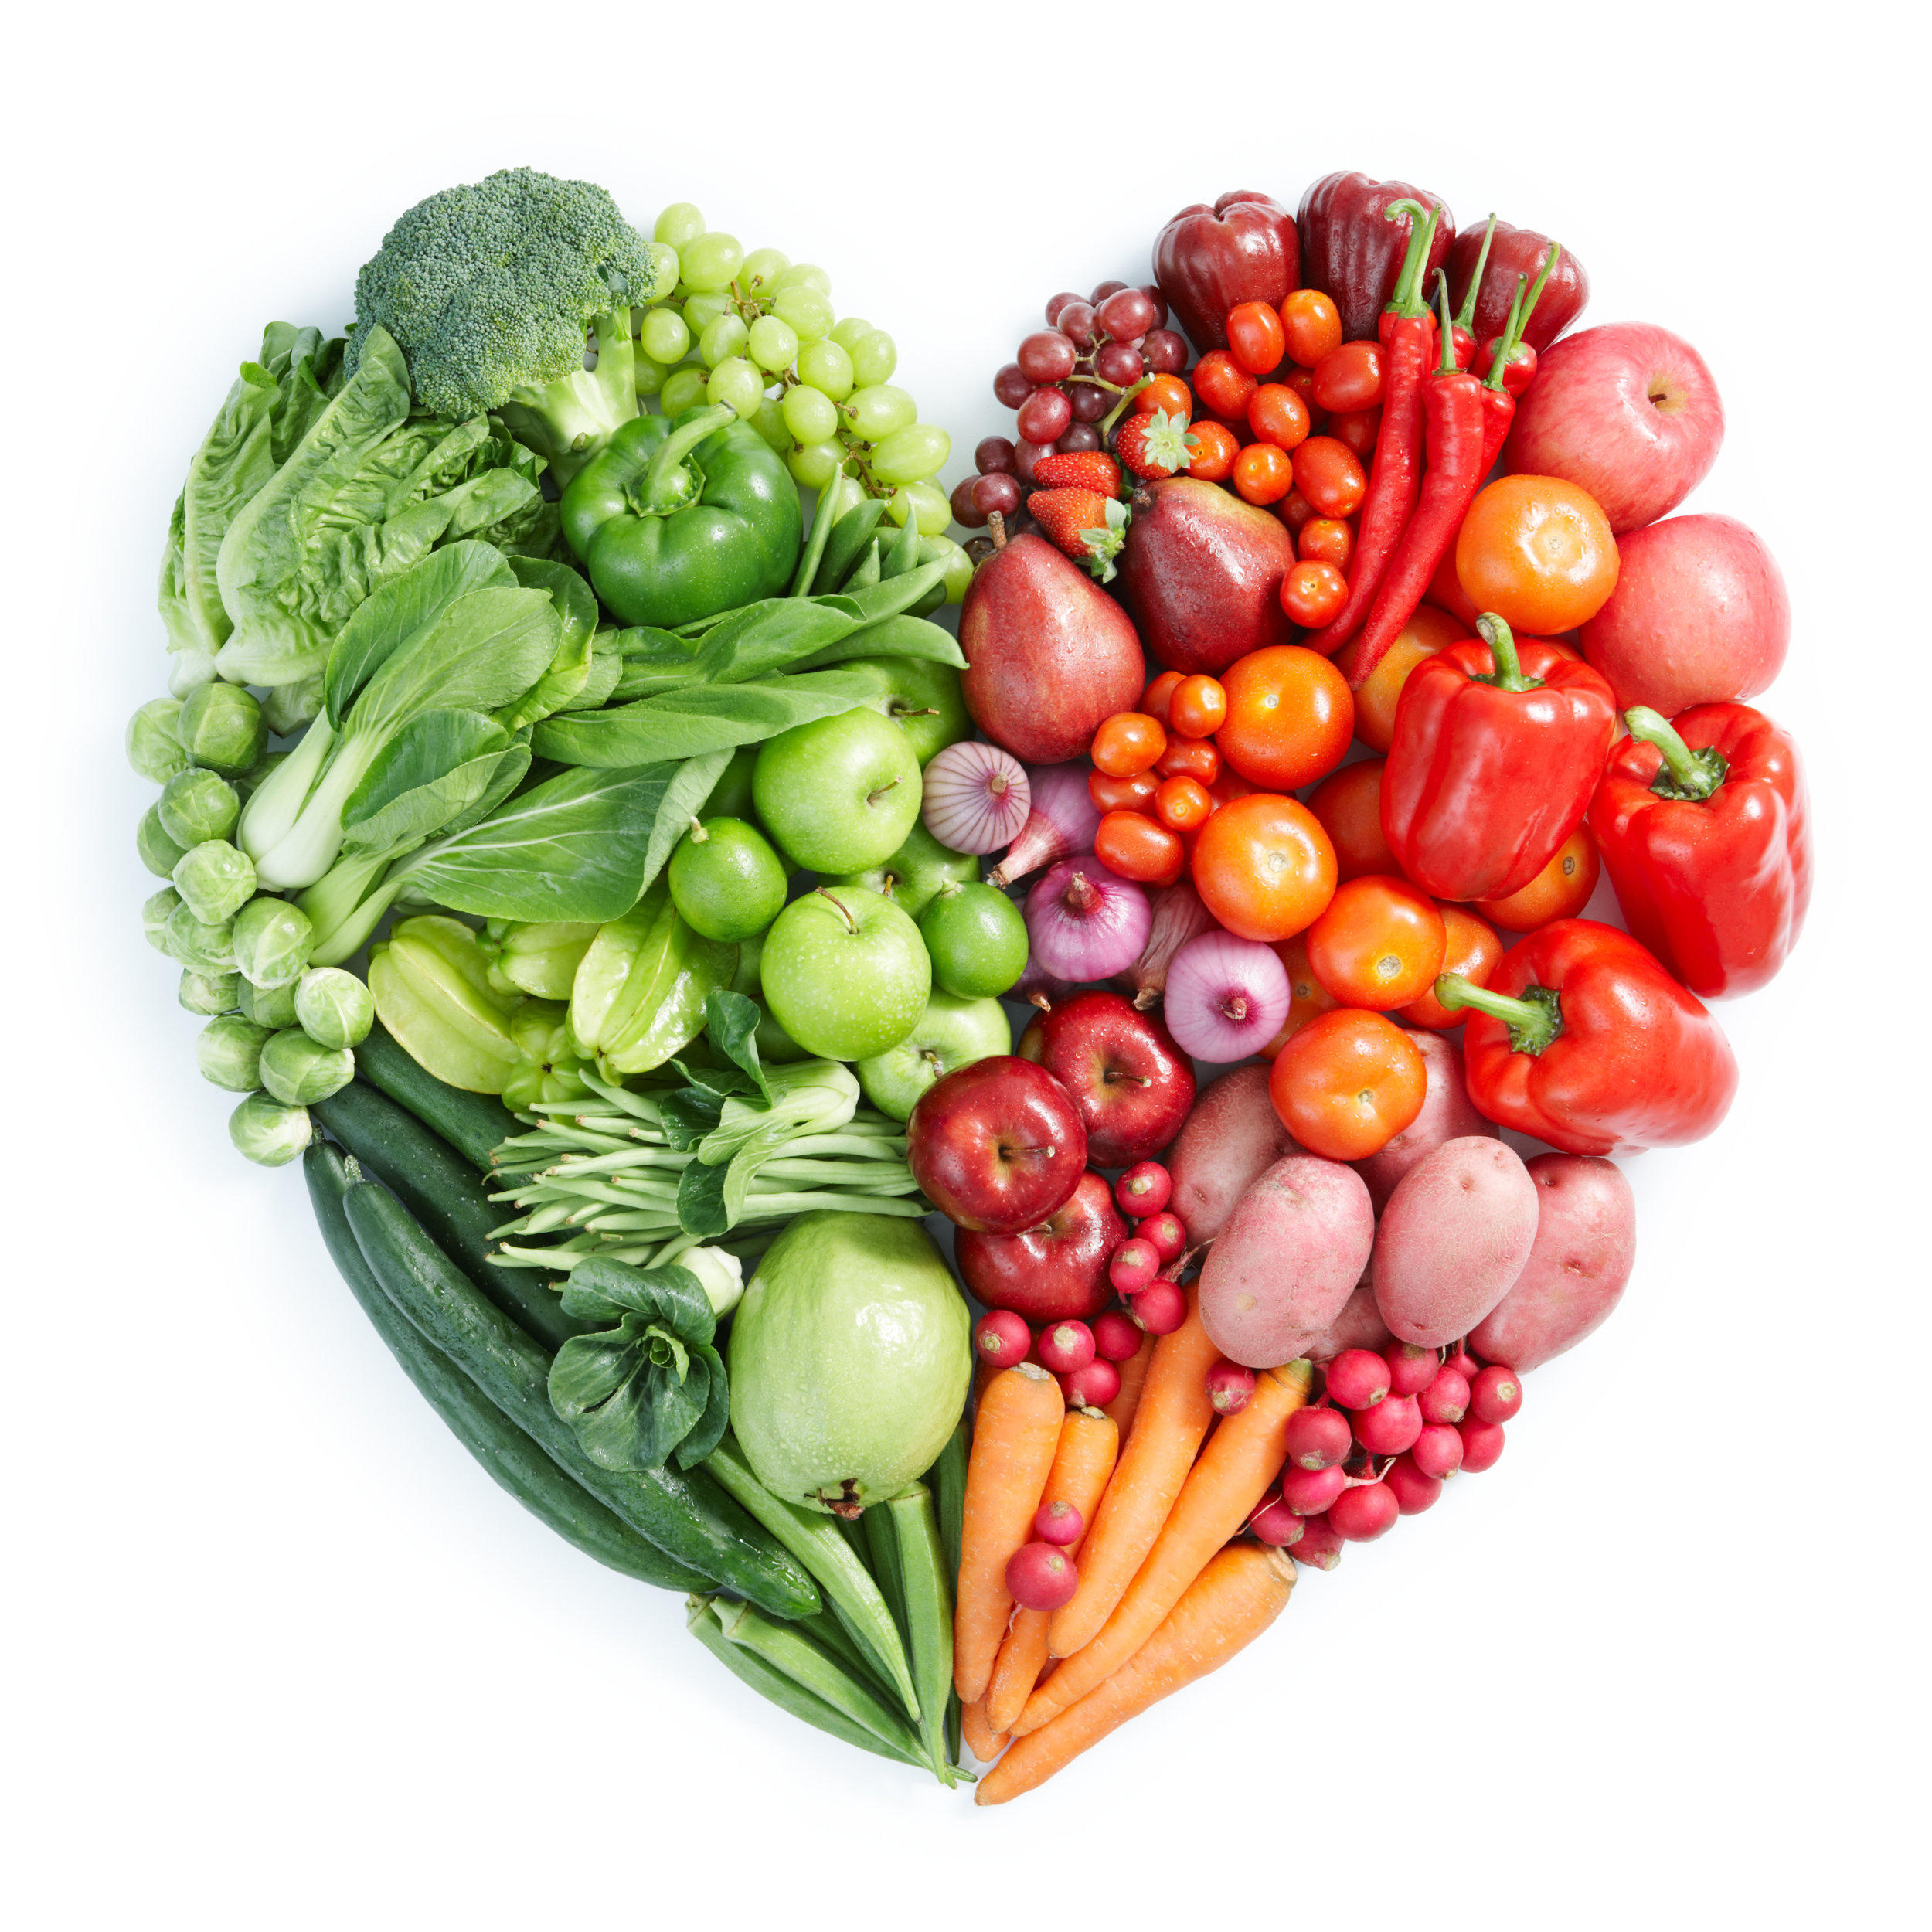 bigstock-Green-And-Red-Healthy-Food-14588906.jpg